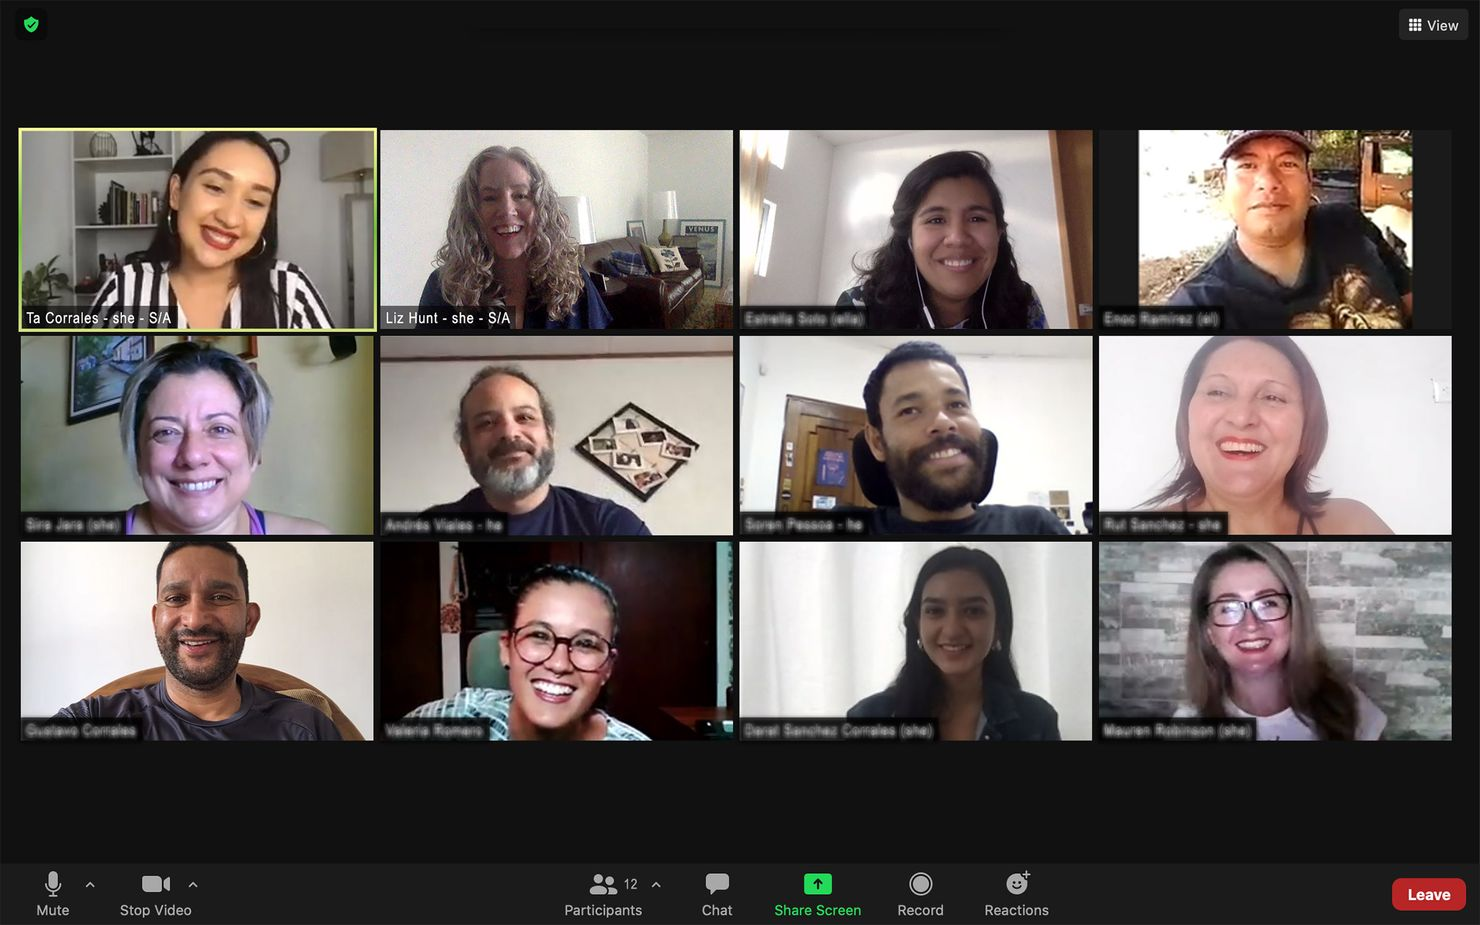 ta and liz of smith assembly facilitate an online meeting over zoom with 10 participants (6 women and 4 men)